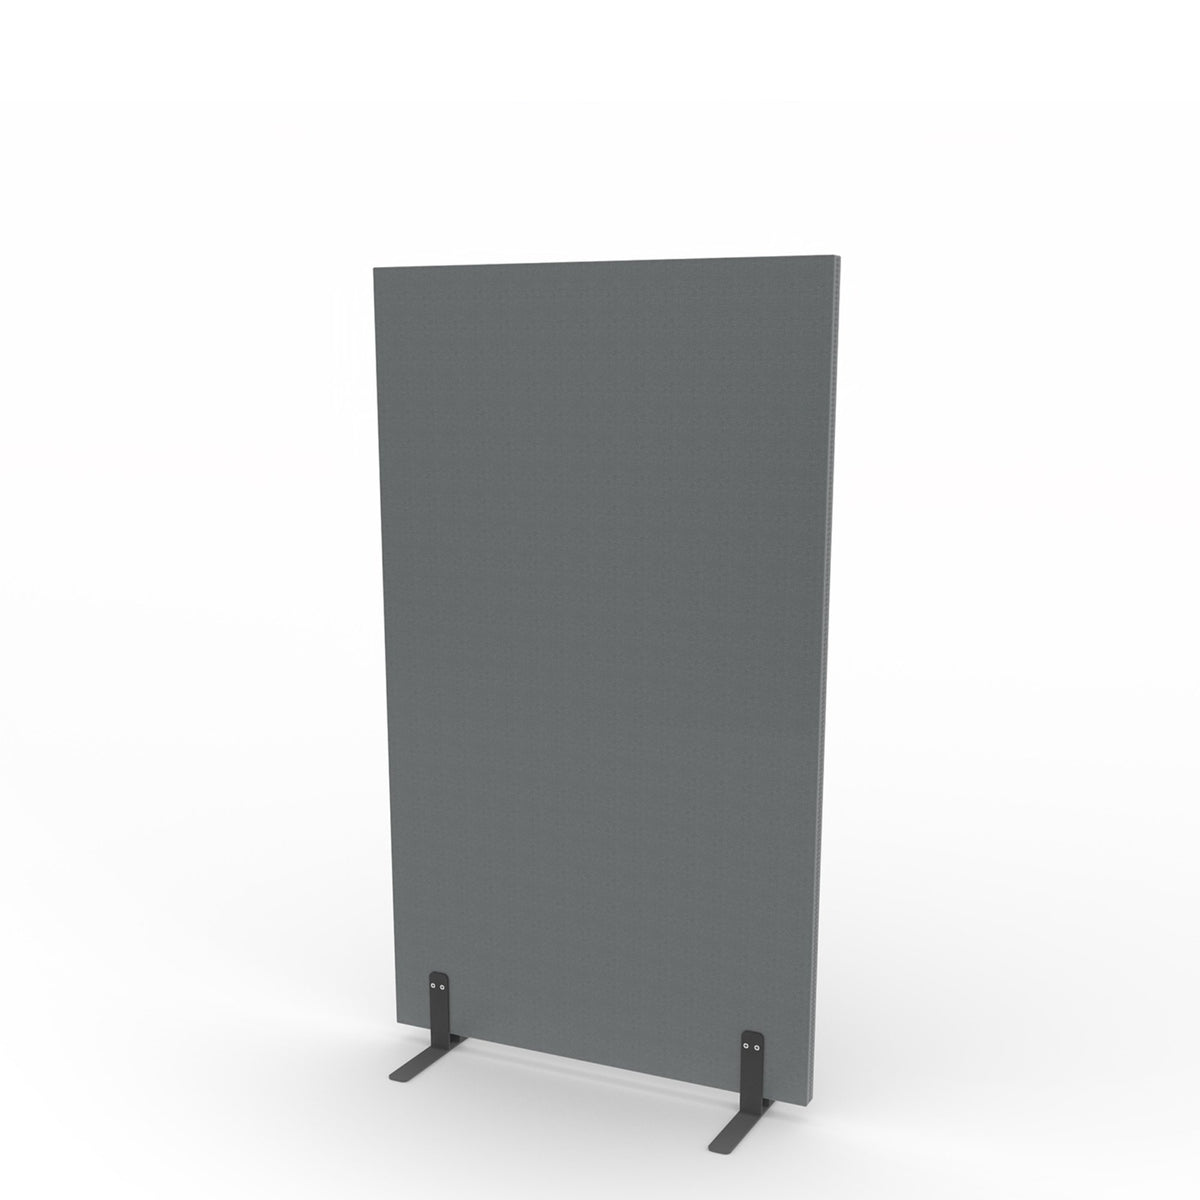 Edsbyn Embrace Floor Screen Parteen